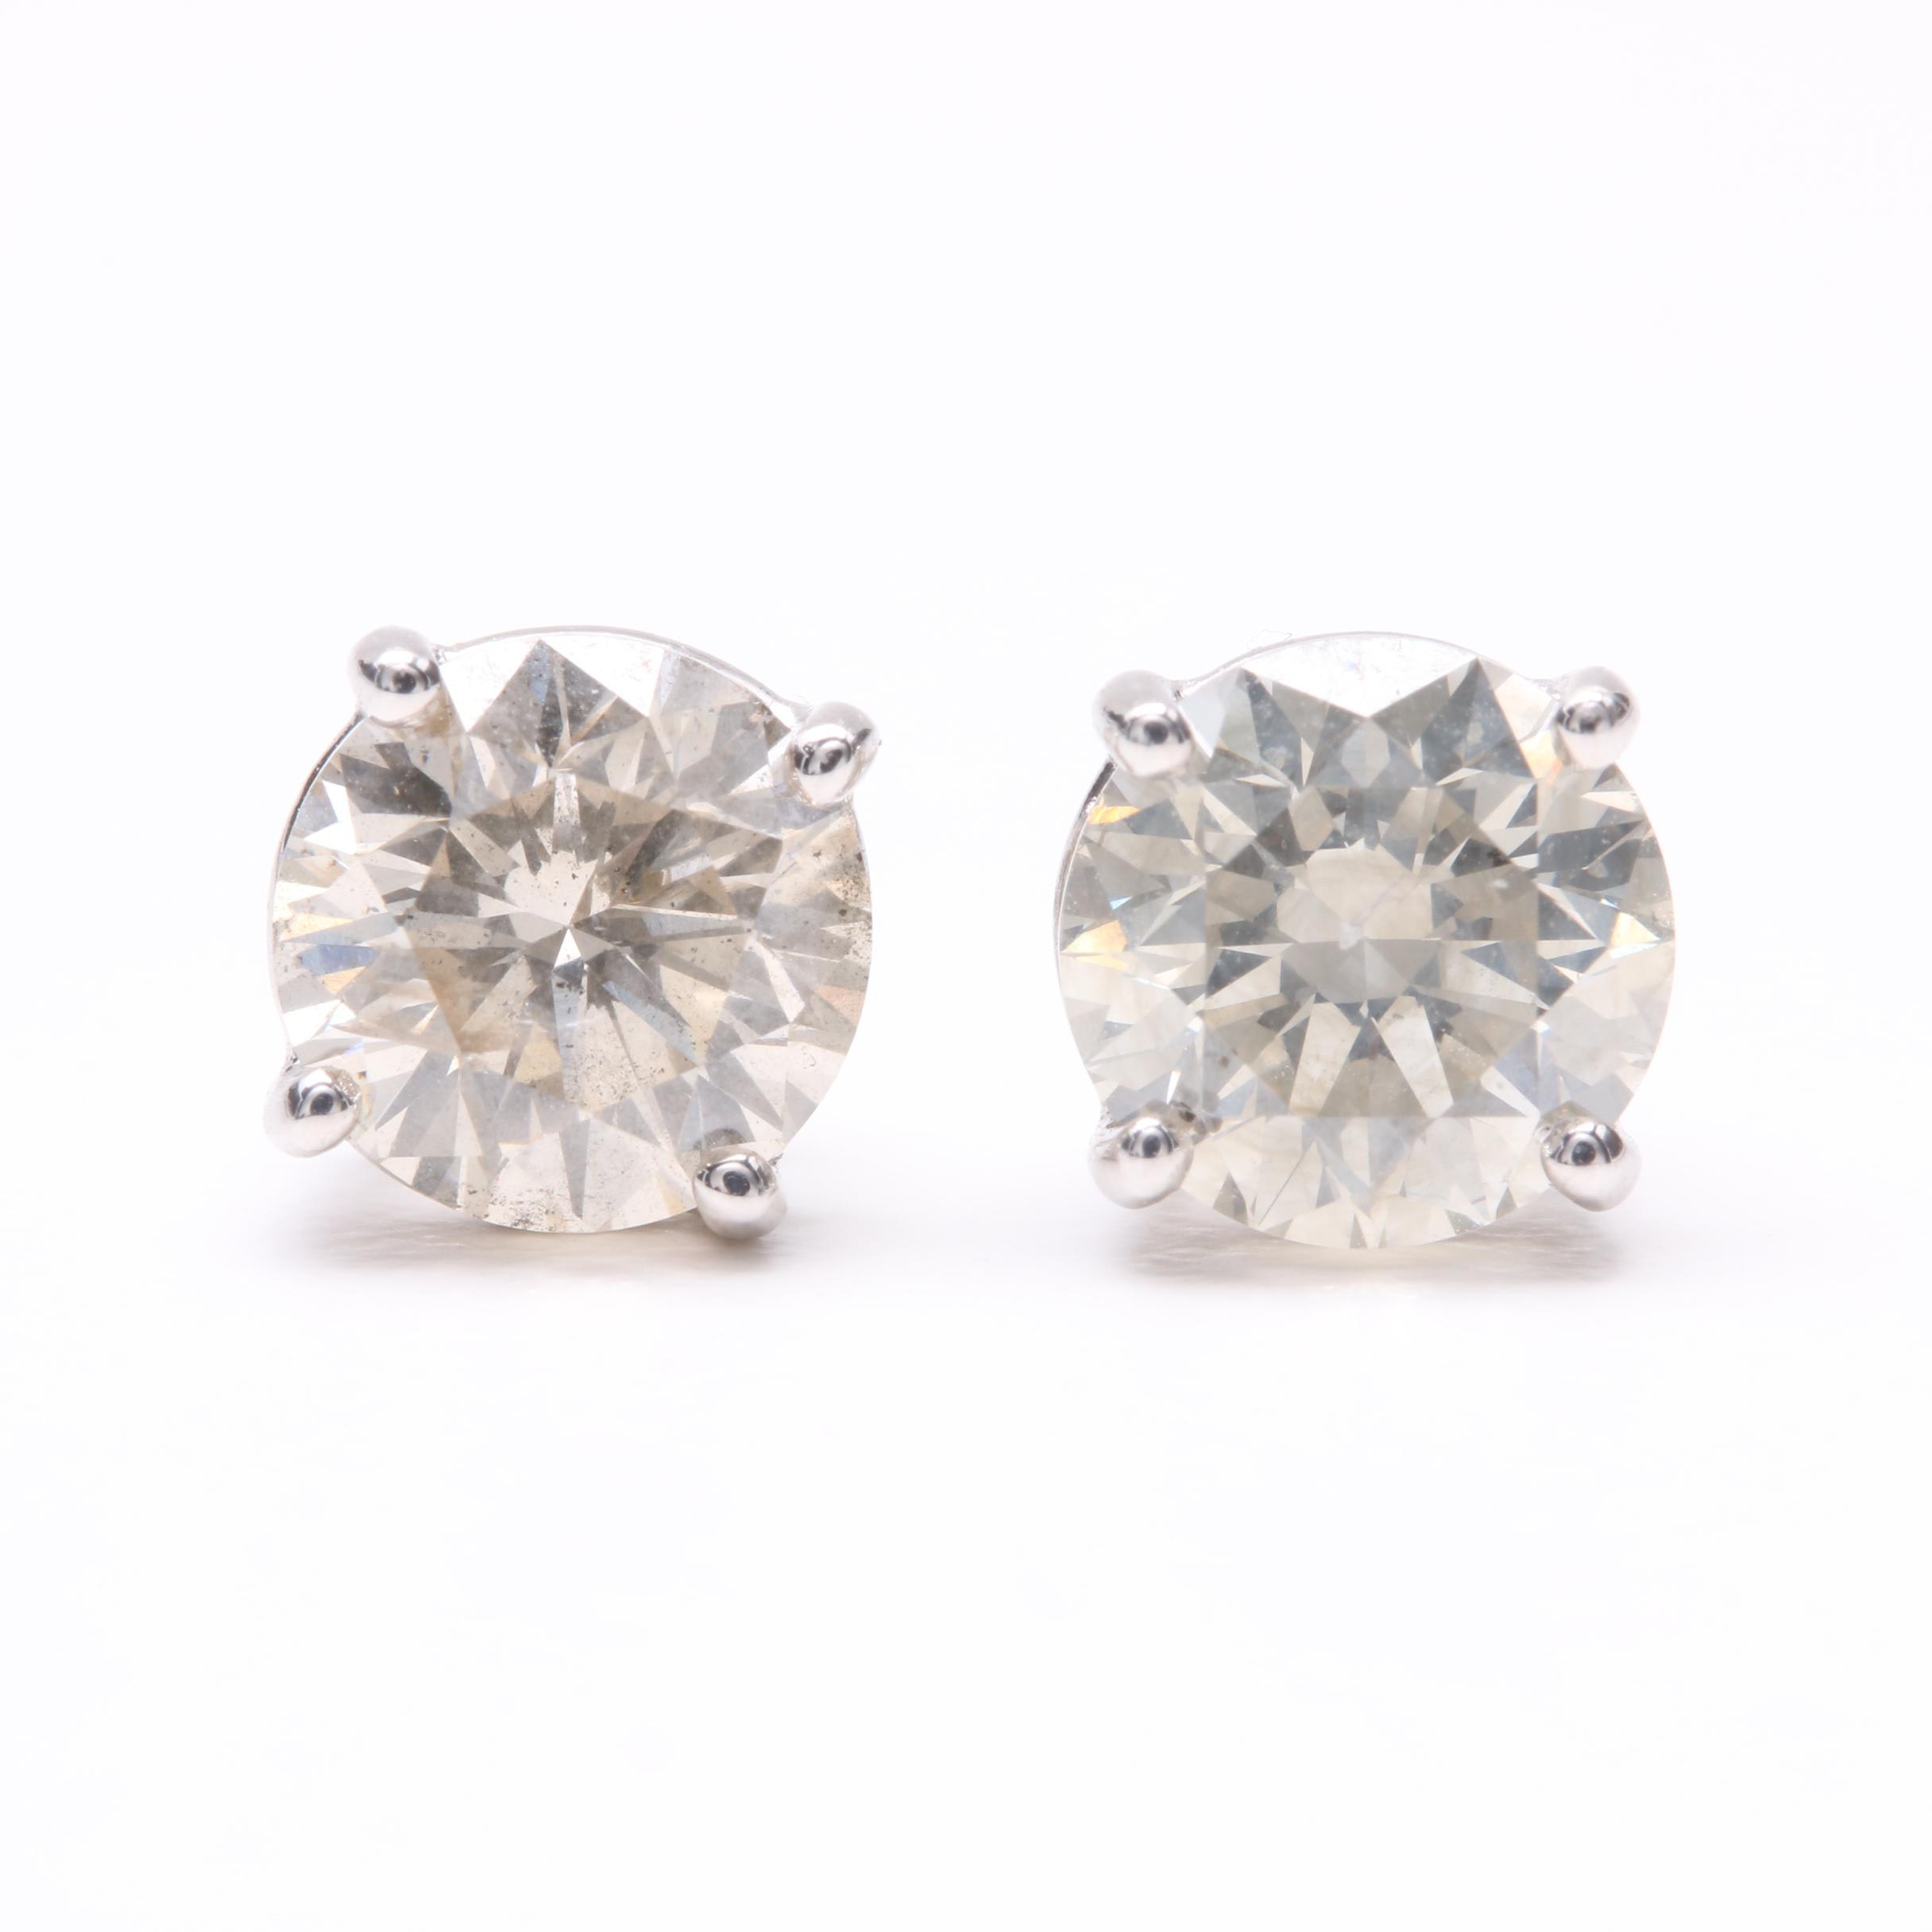 18K White Gold 2.18 CTW Diamond Stud Earrings